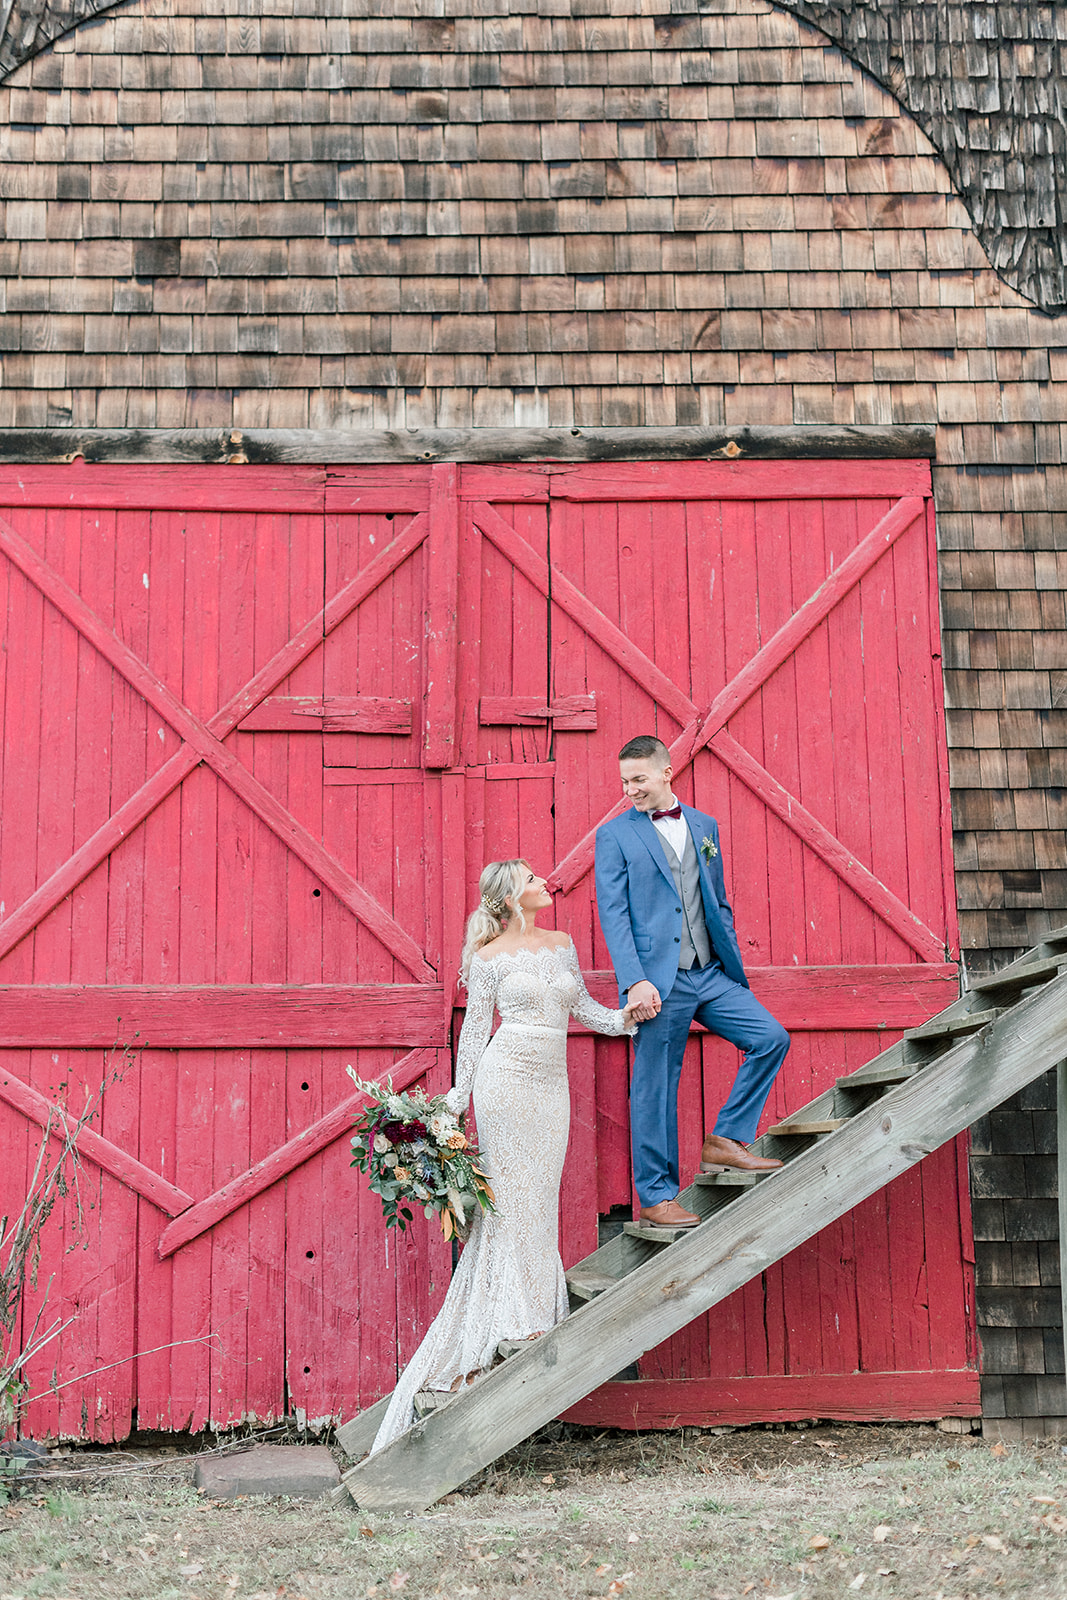 bride and groom on stairs next to red barn door